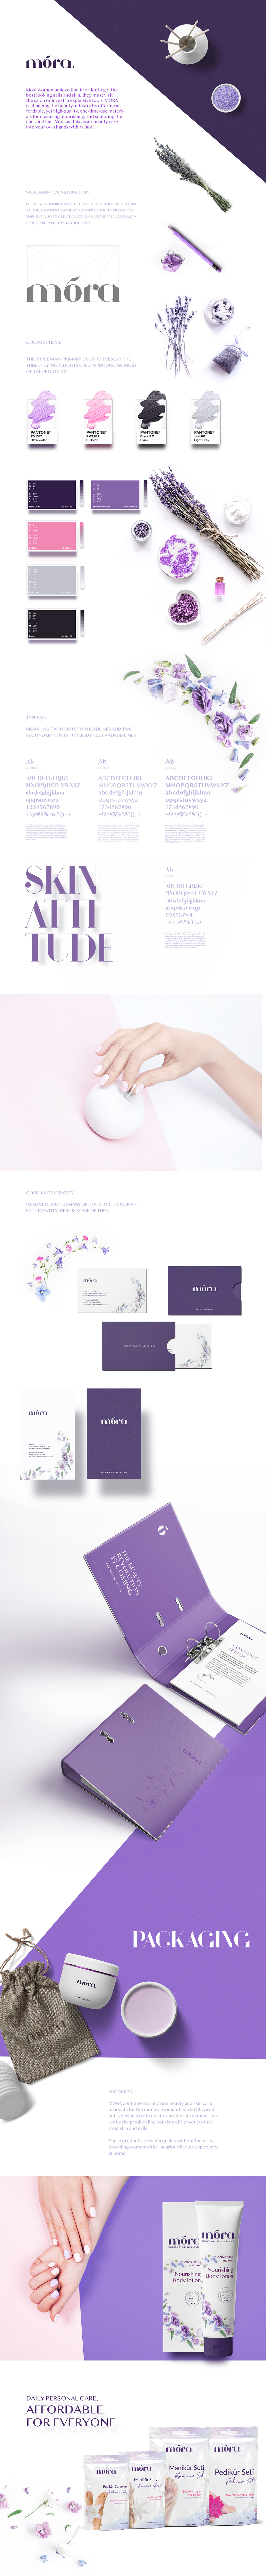 Logo Design graphic design  Cosmetic skincare beauty manicure pedicure Packaging Flowers branding